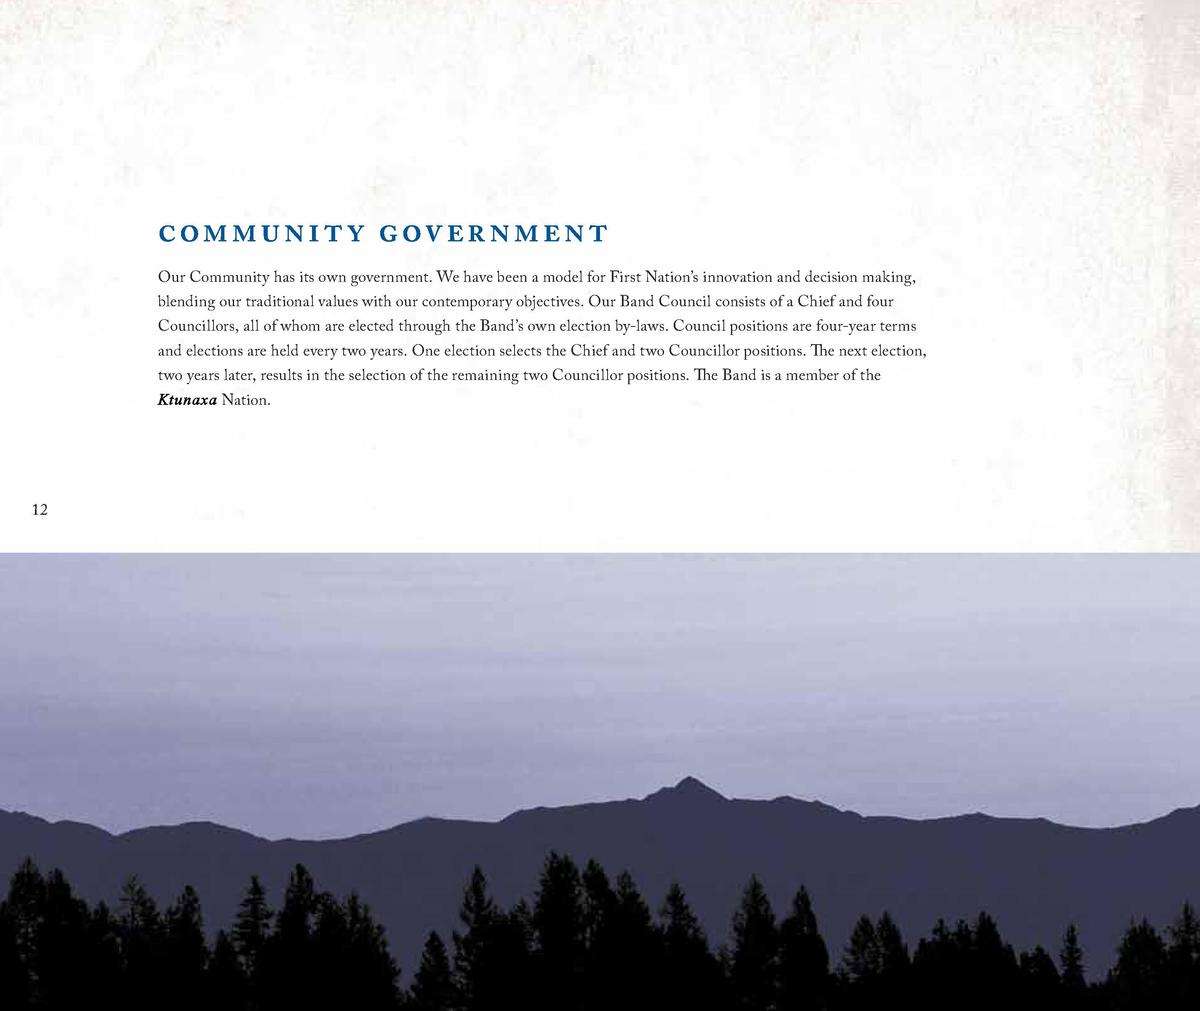 com m u nit y g ov er nment Our Community has its own government. We have been a model for First Nation   s innovation and...